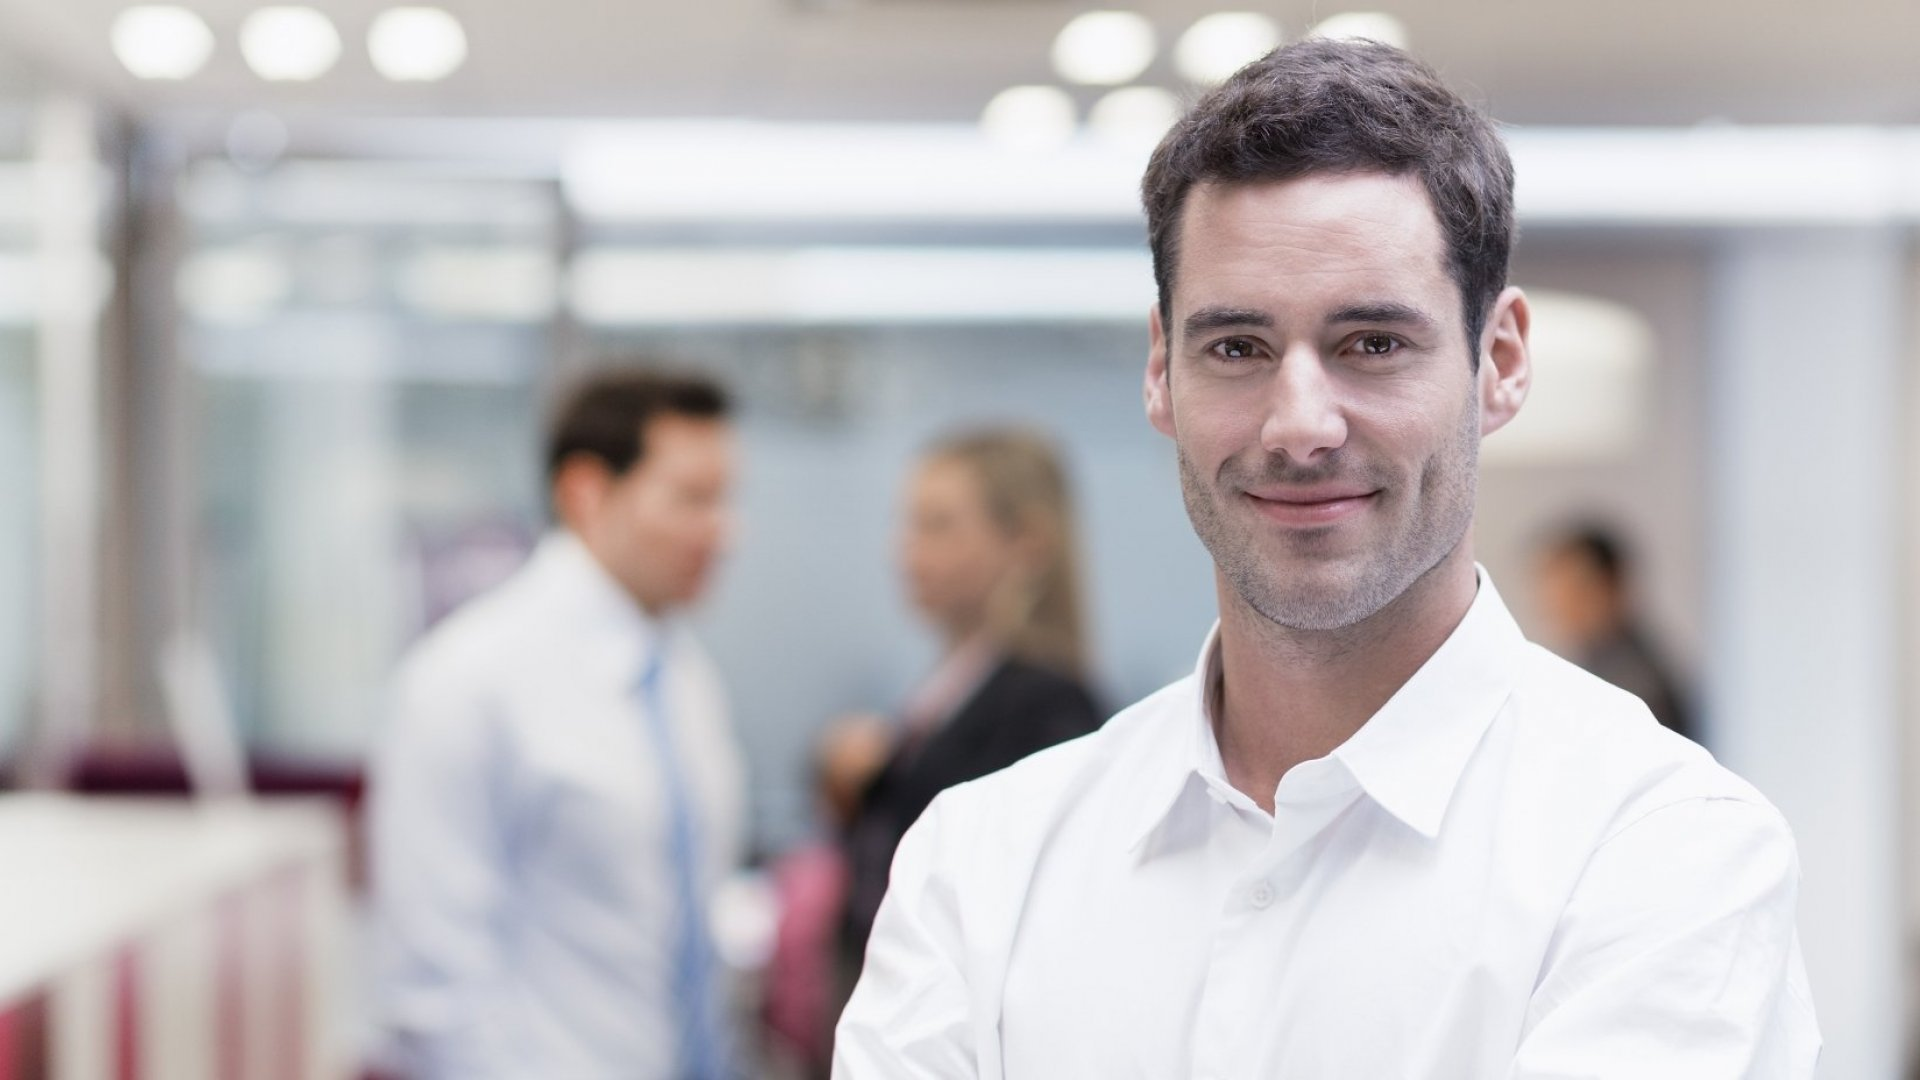 If You Want to Succeed, You Need to Have the Manager's Mindset (Here Are 5 Ways How)